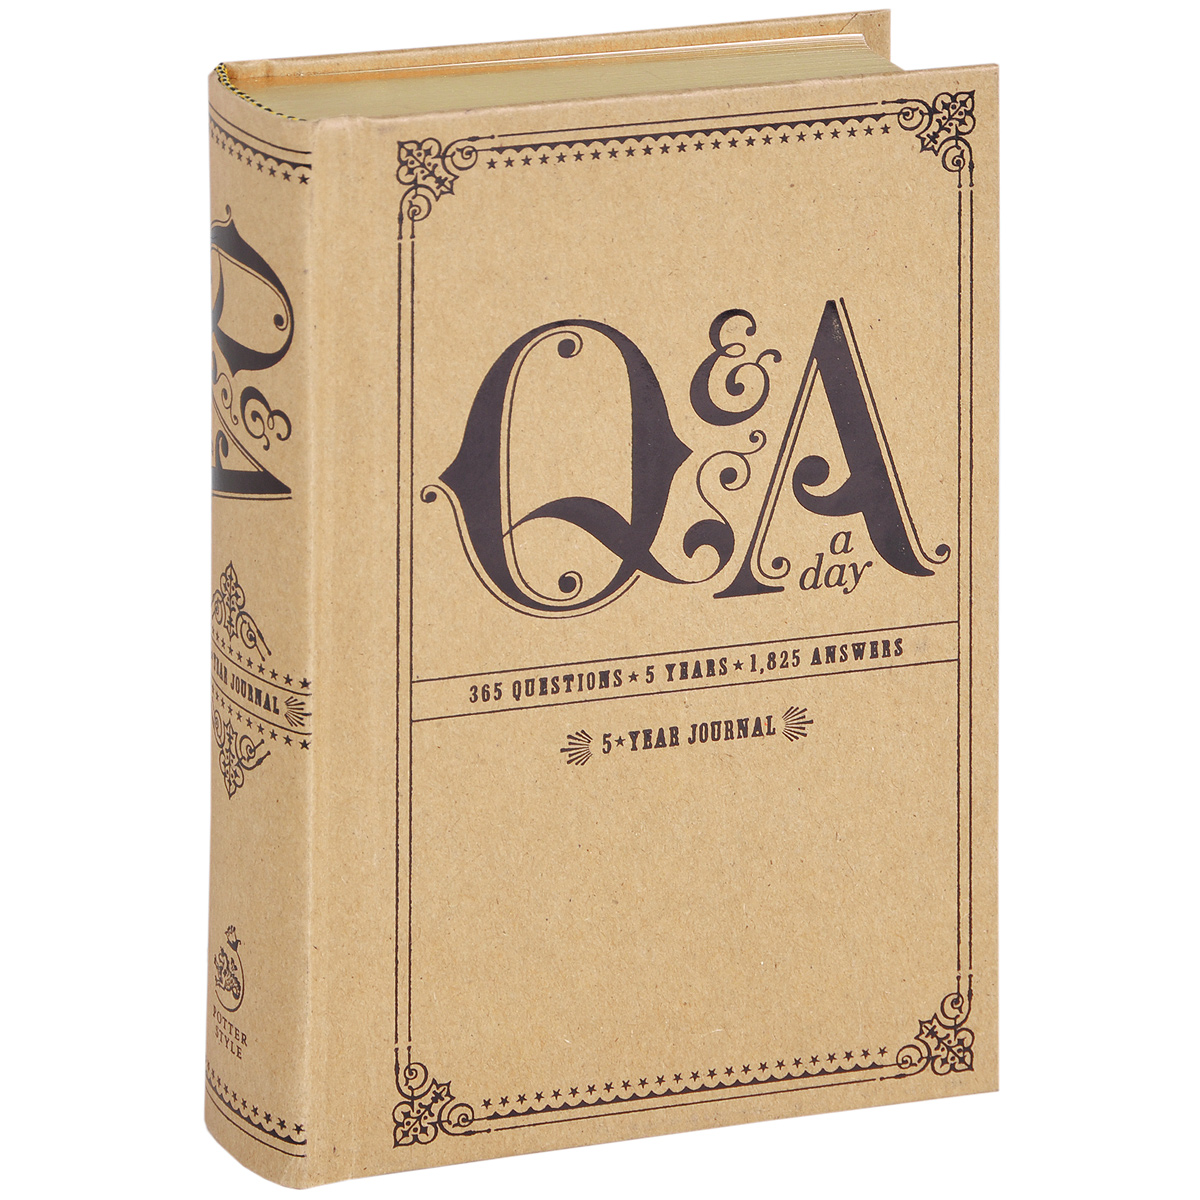 Q & A a Day: 5-Year Journal: 365 Questions: 1825 Answers who thought this was a good idea and other questions you should have answers to when you work in the white house